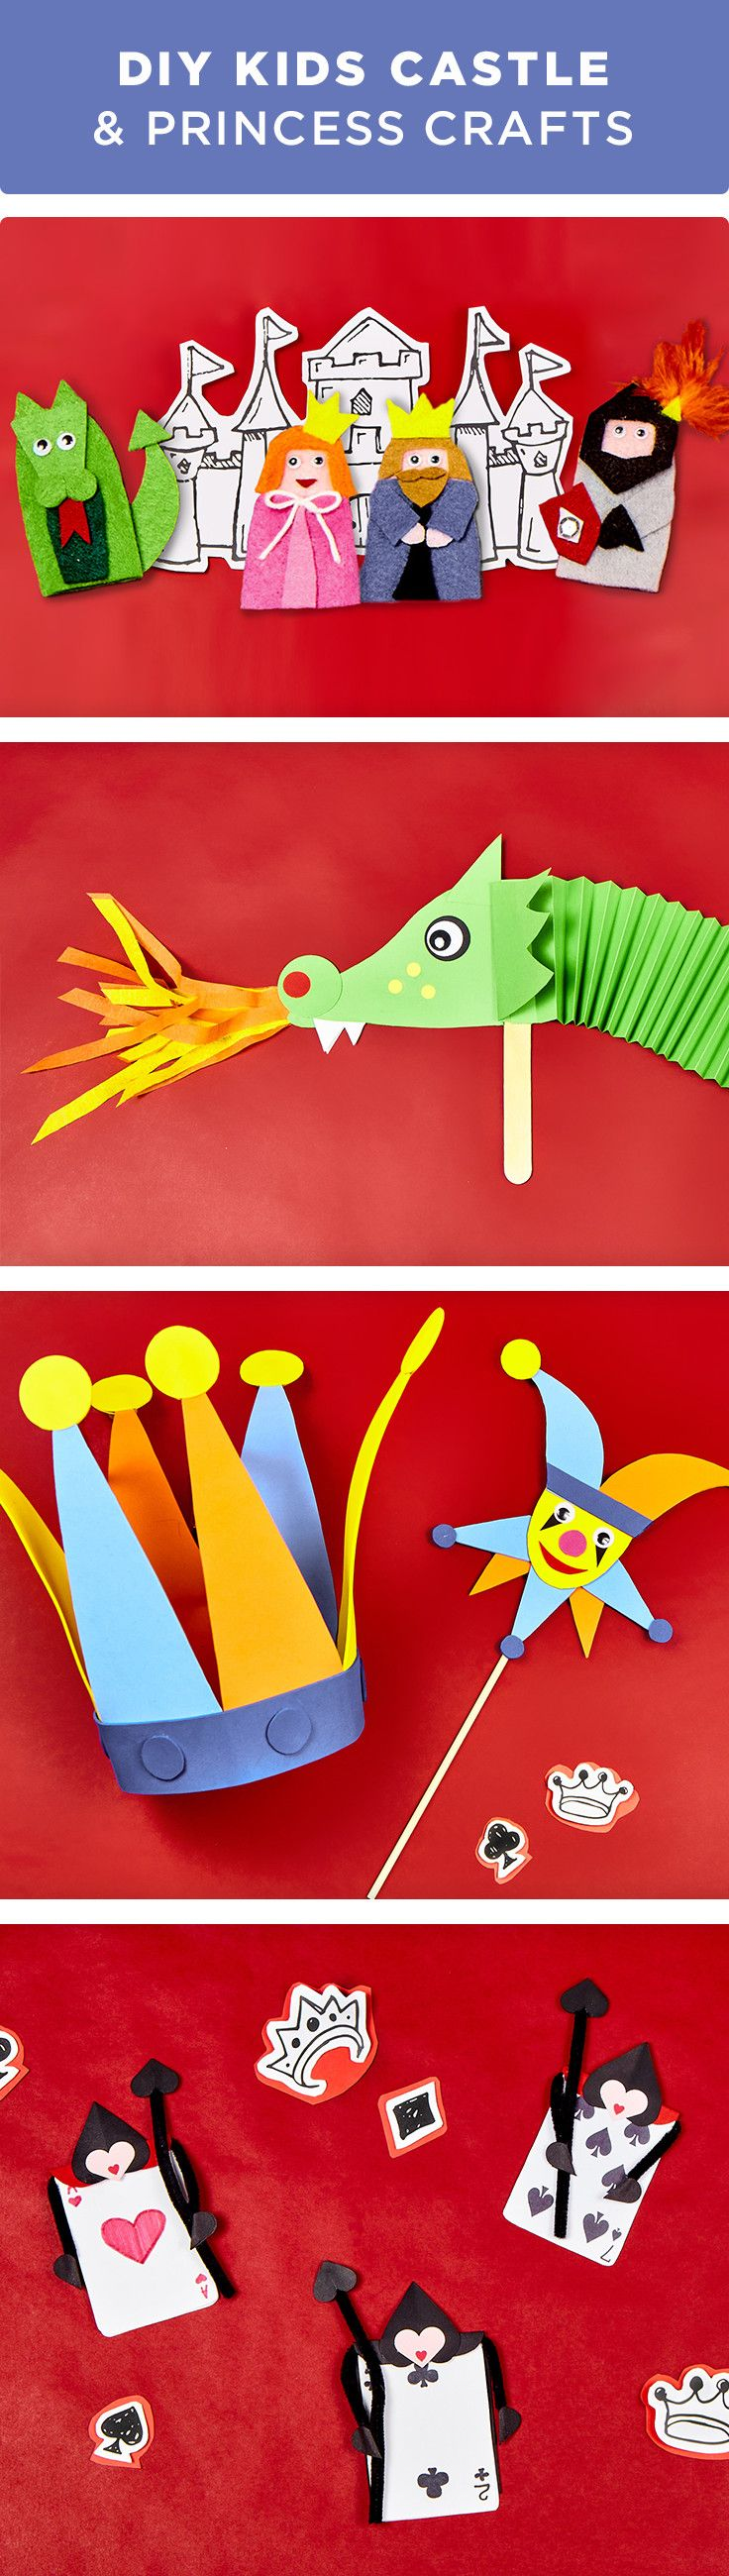 Kids Can Learn All About Castles Dragons Princesses With These Fun And Simple Crafts